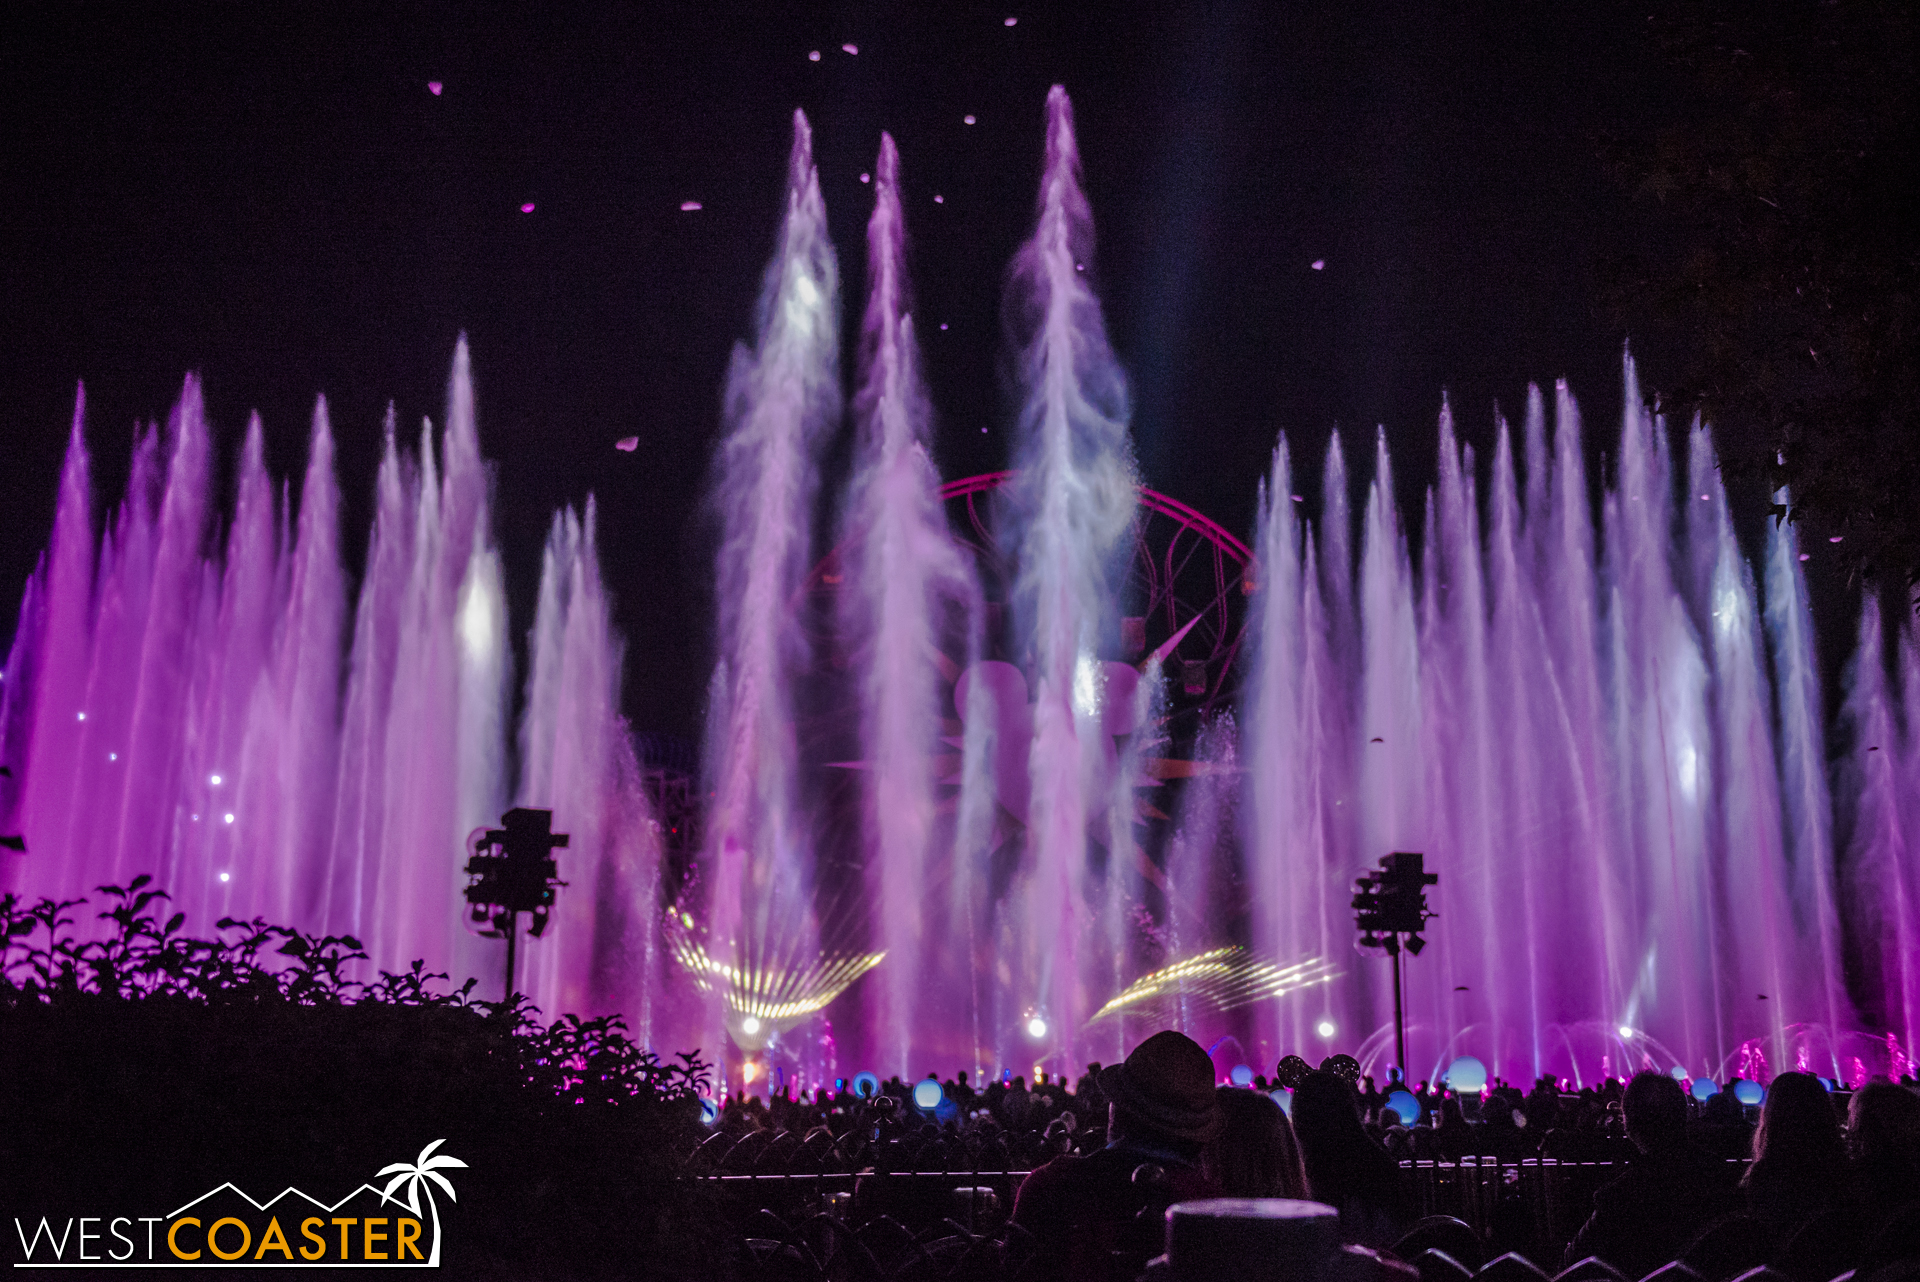 DLR-17_1129-G-WorldOfColor-0022.jpg